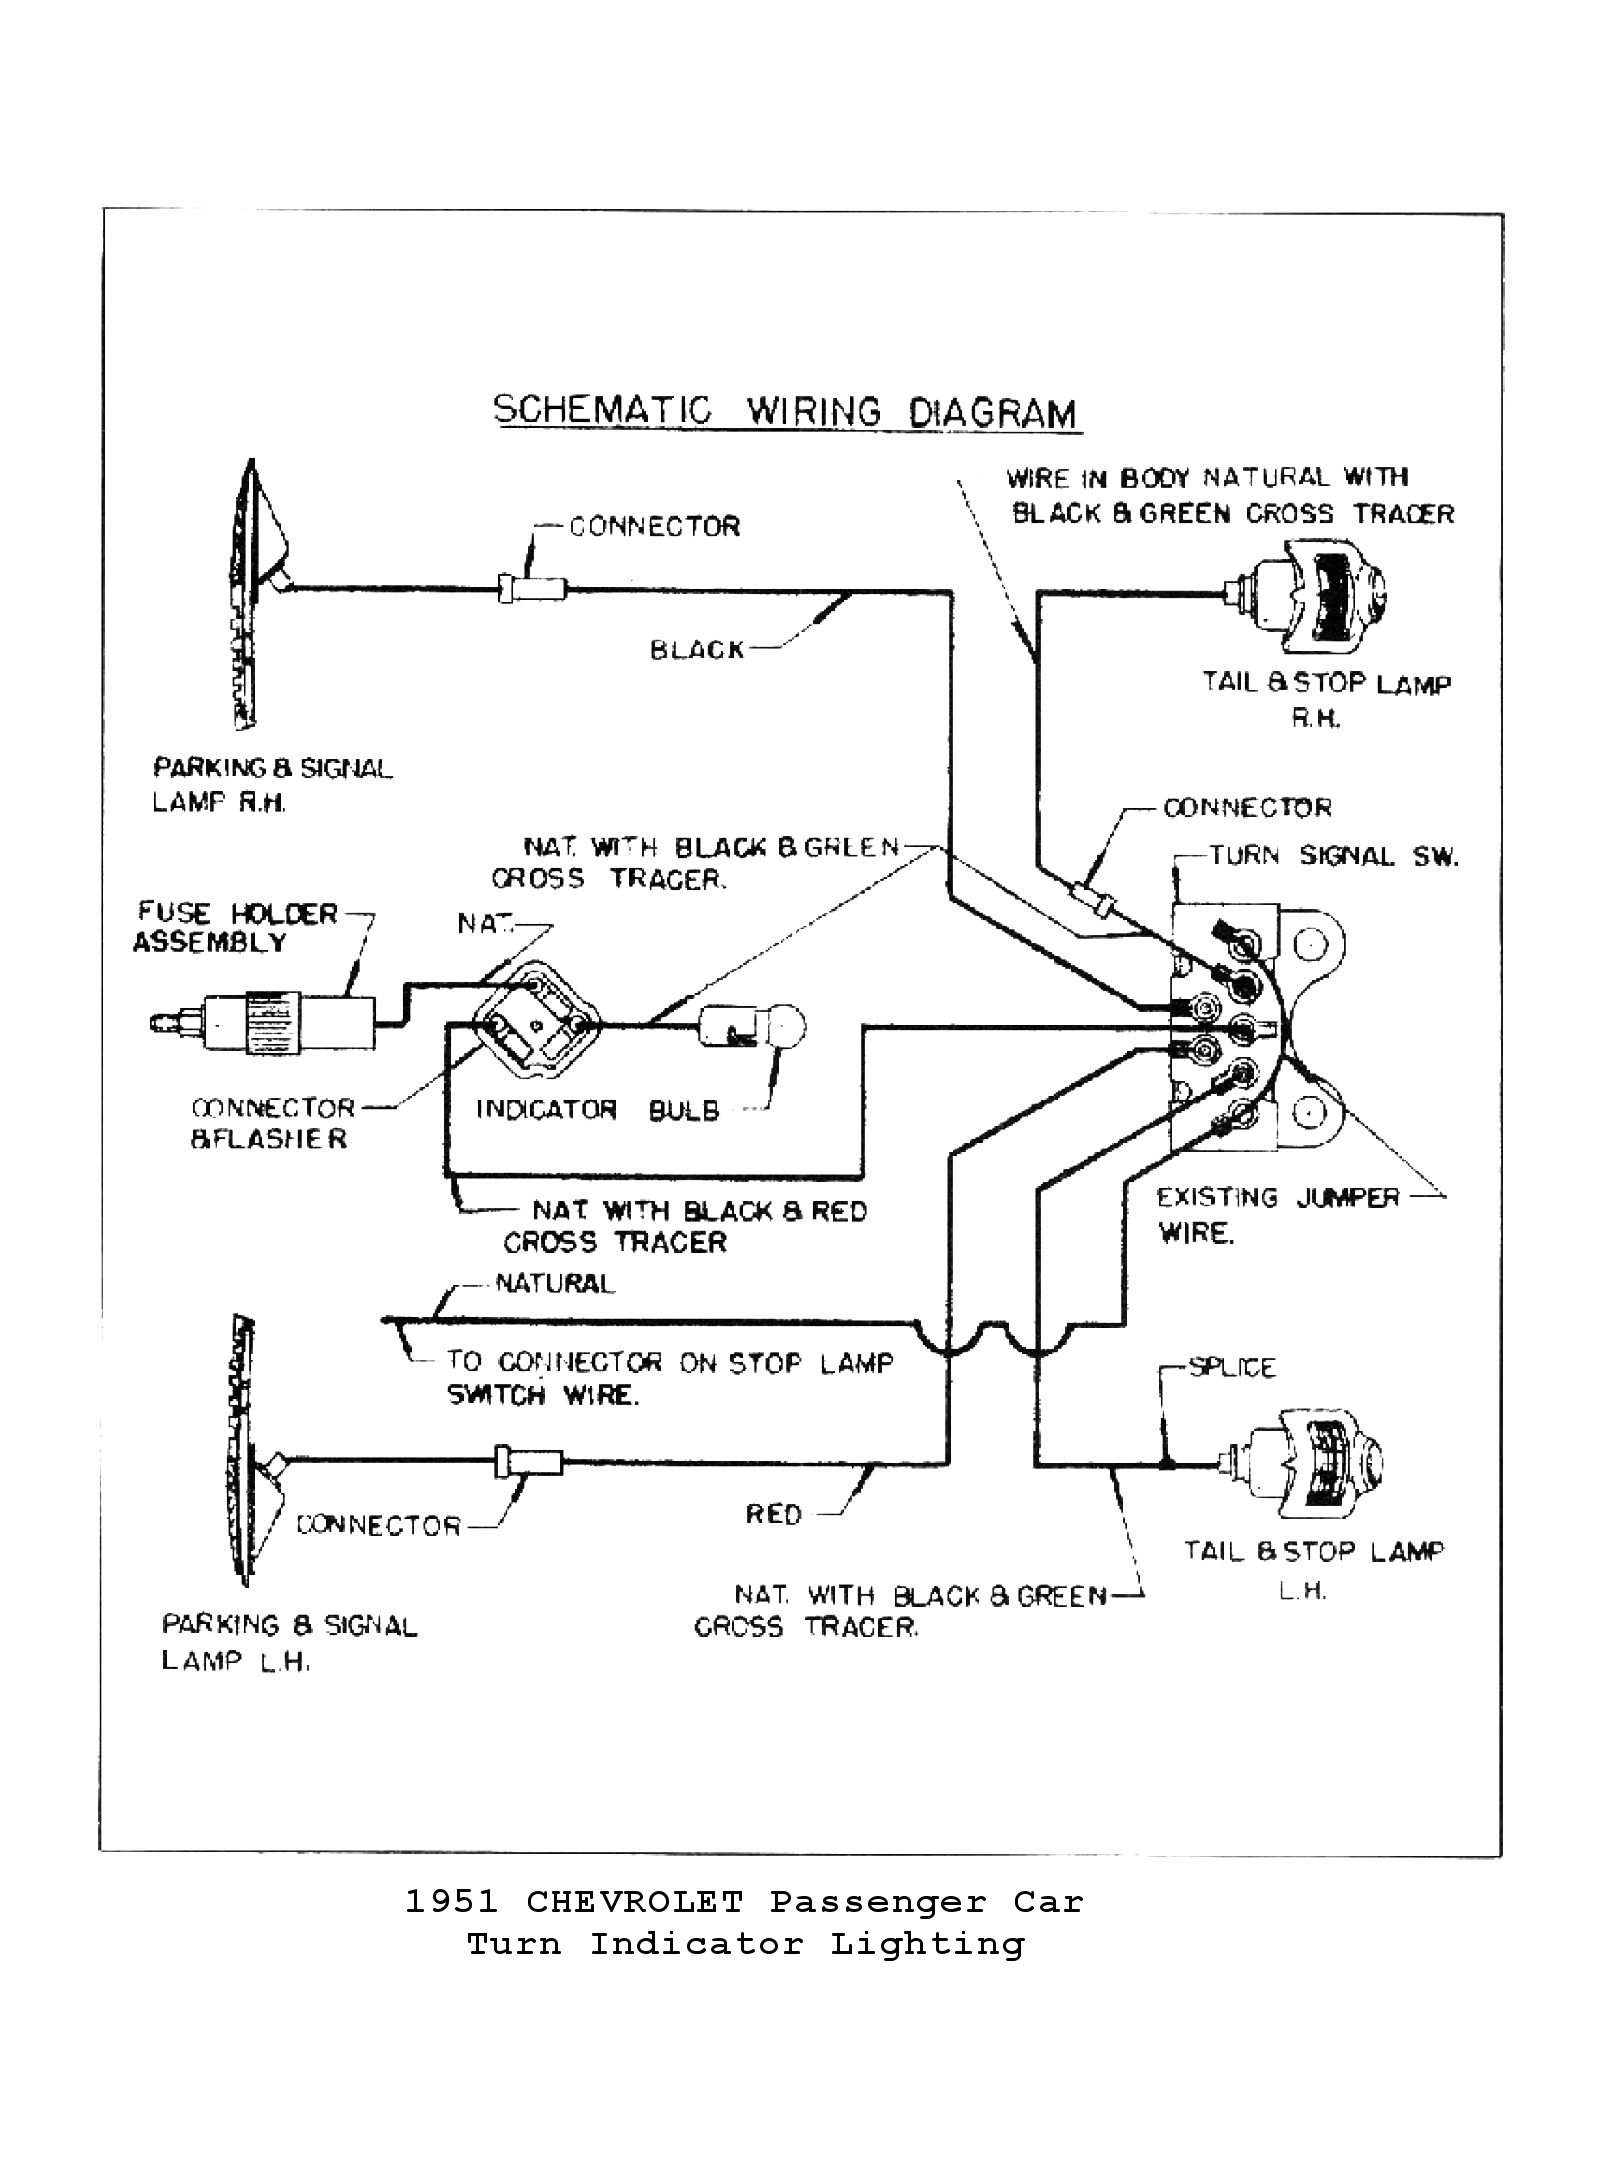 5152turnsignals 1955 chevy wiring diagram 1955 pontiac wiring diagram \u2022 free 1953 Ford Car Wiring Diagram at crackthecode.co